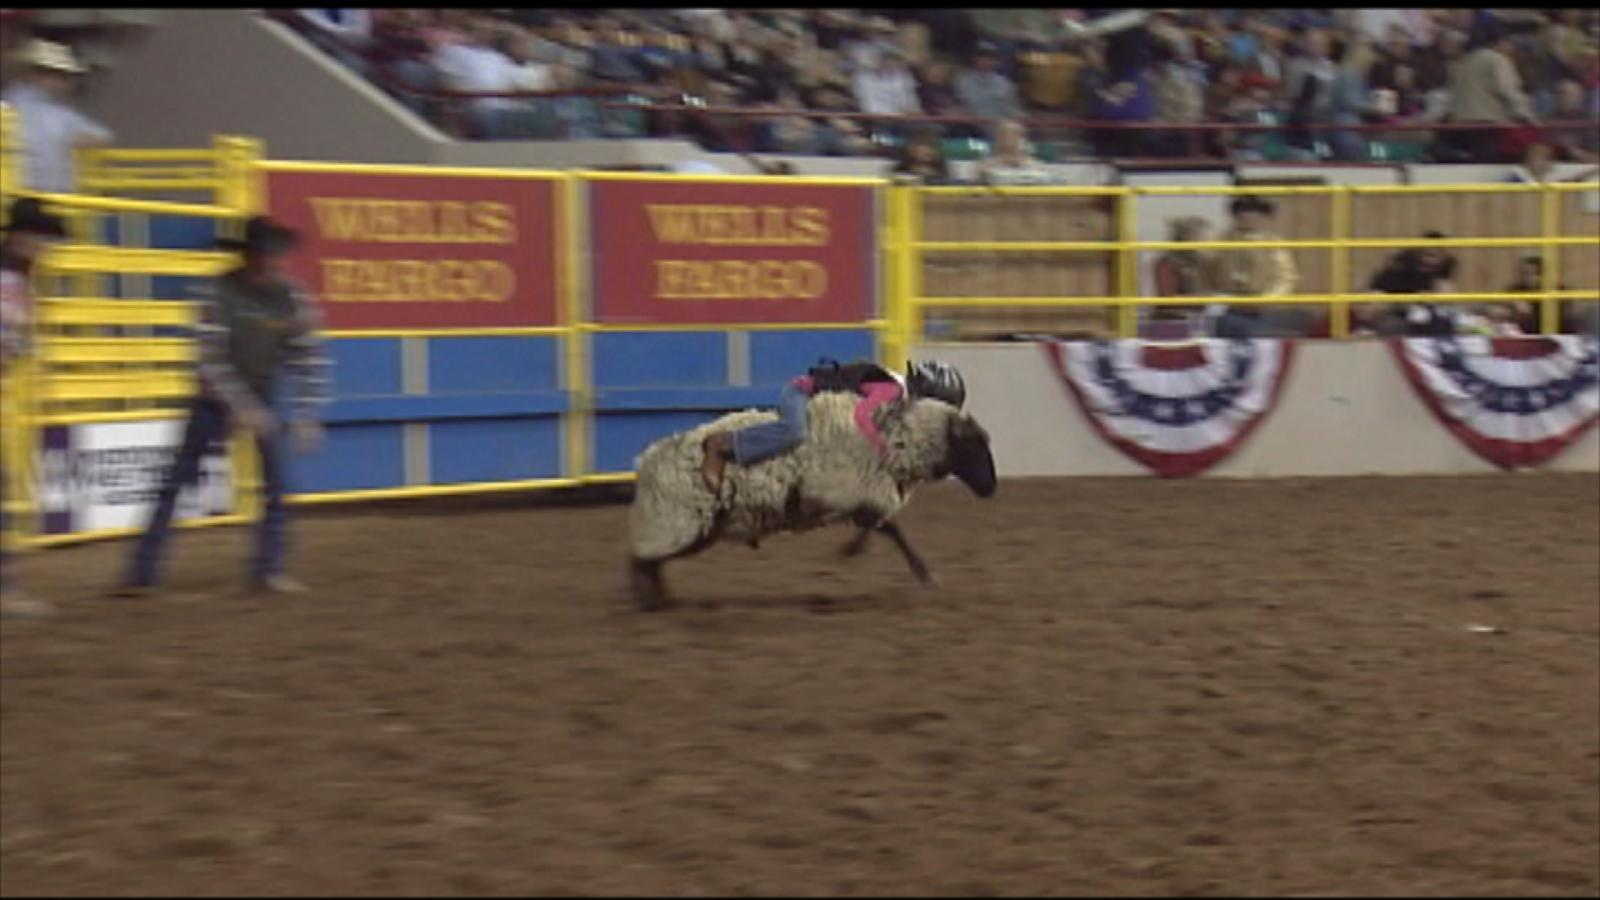 Mutton Bustin' (credit: CBS)